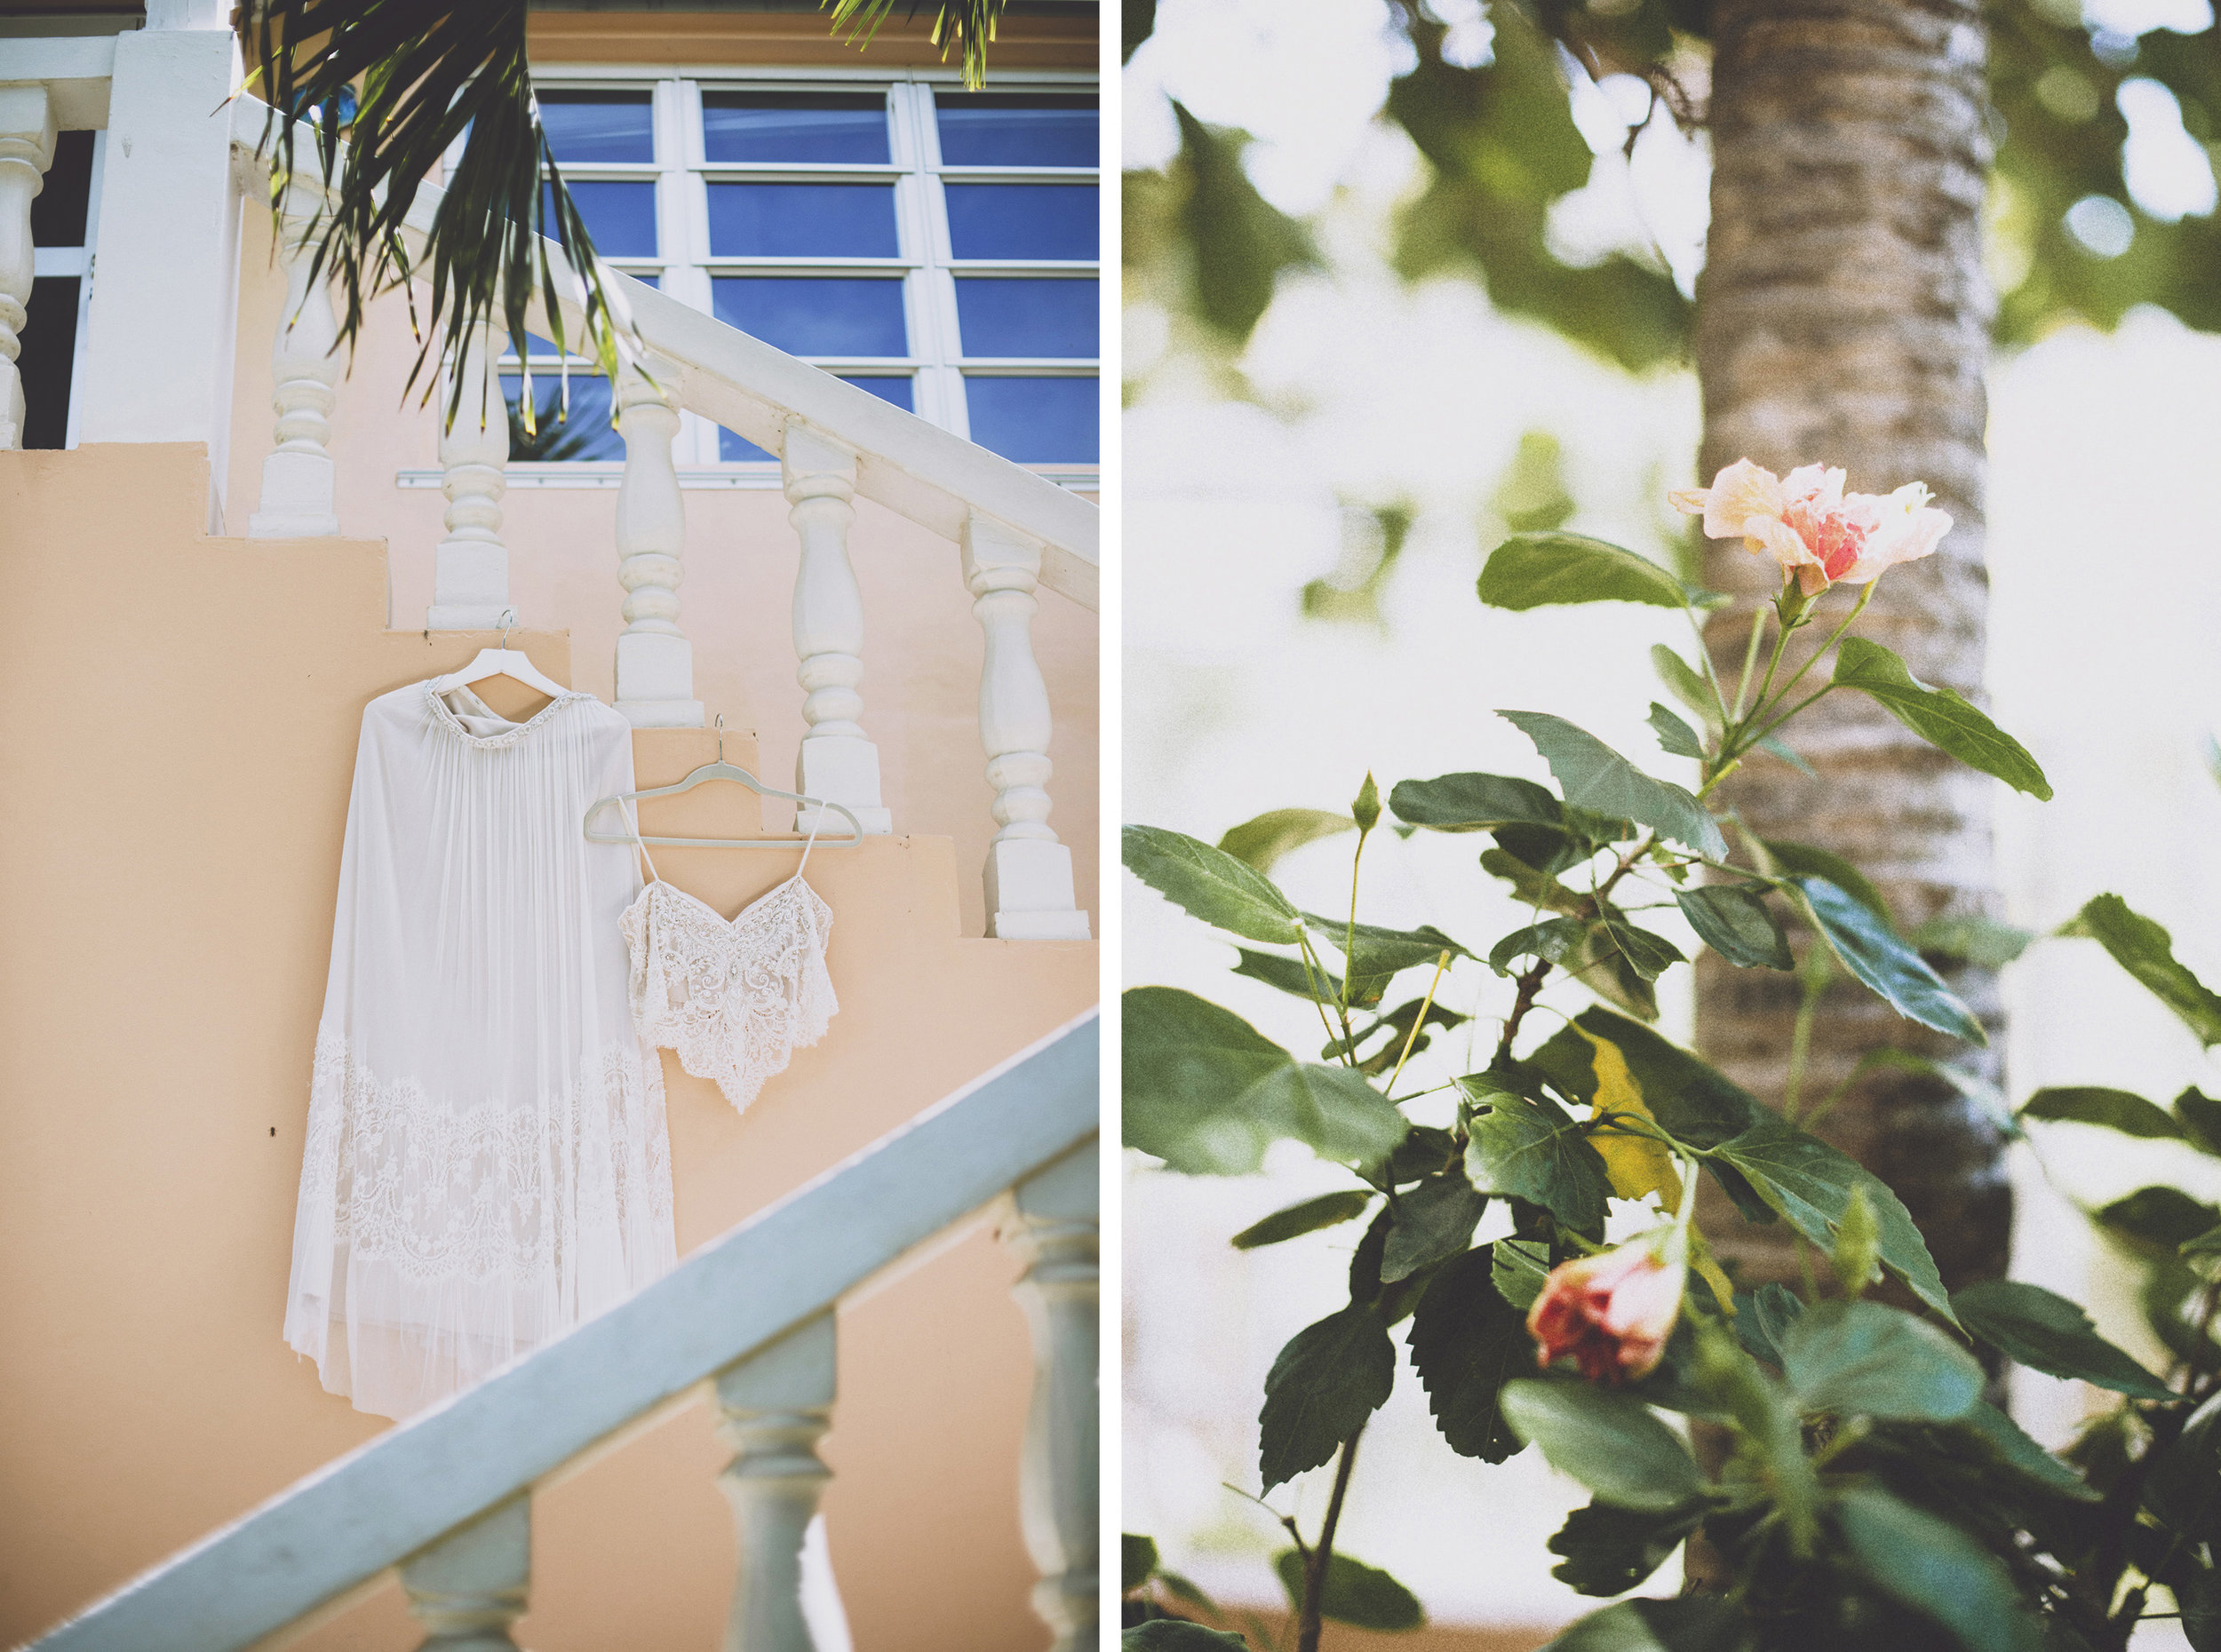 Dress hanging on balcony in St Thomas